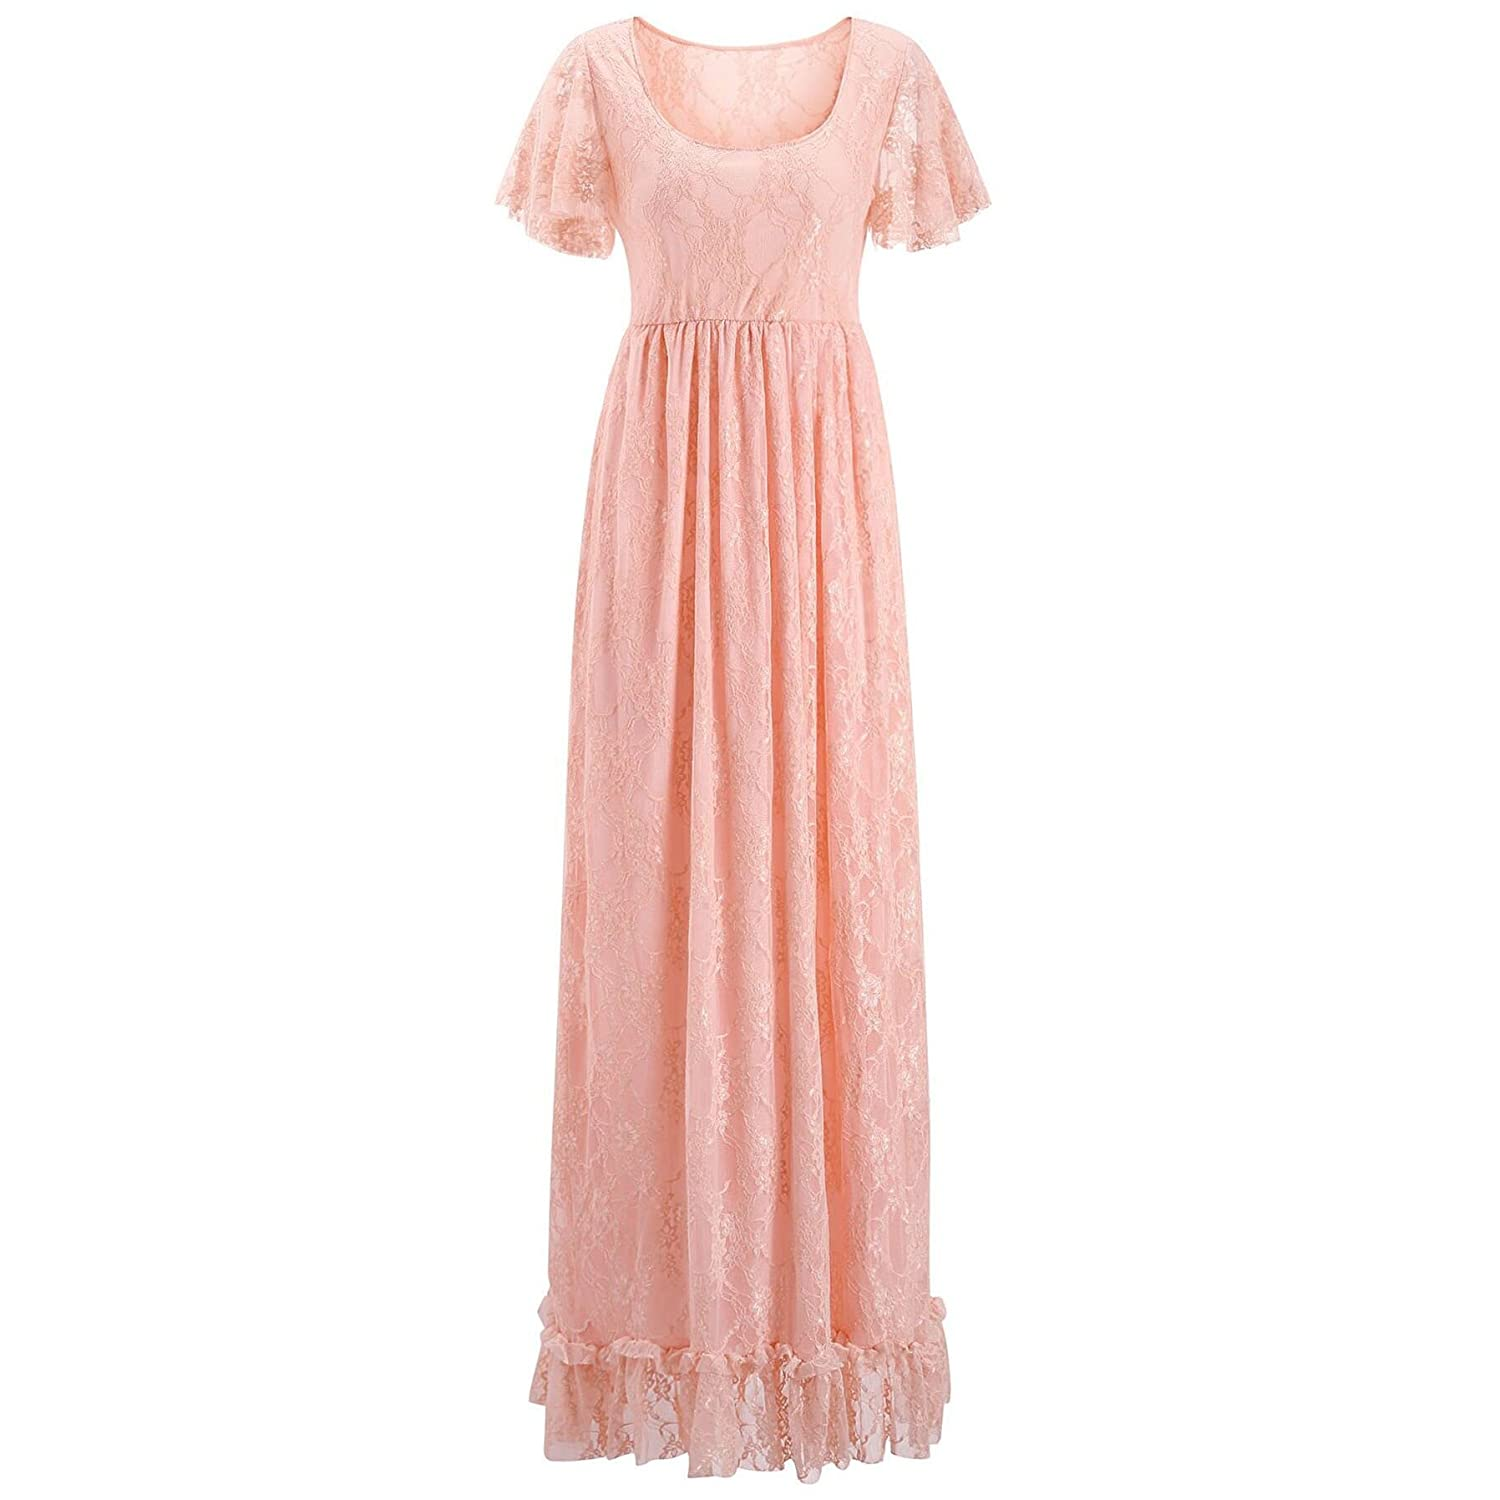 Nilover Women's Maternity Long Dress Transparent Floral Lace Raw Edge Deep V Photography Dress